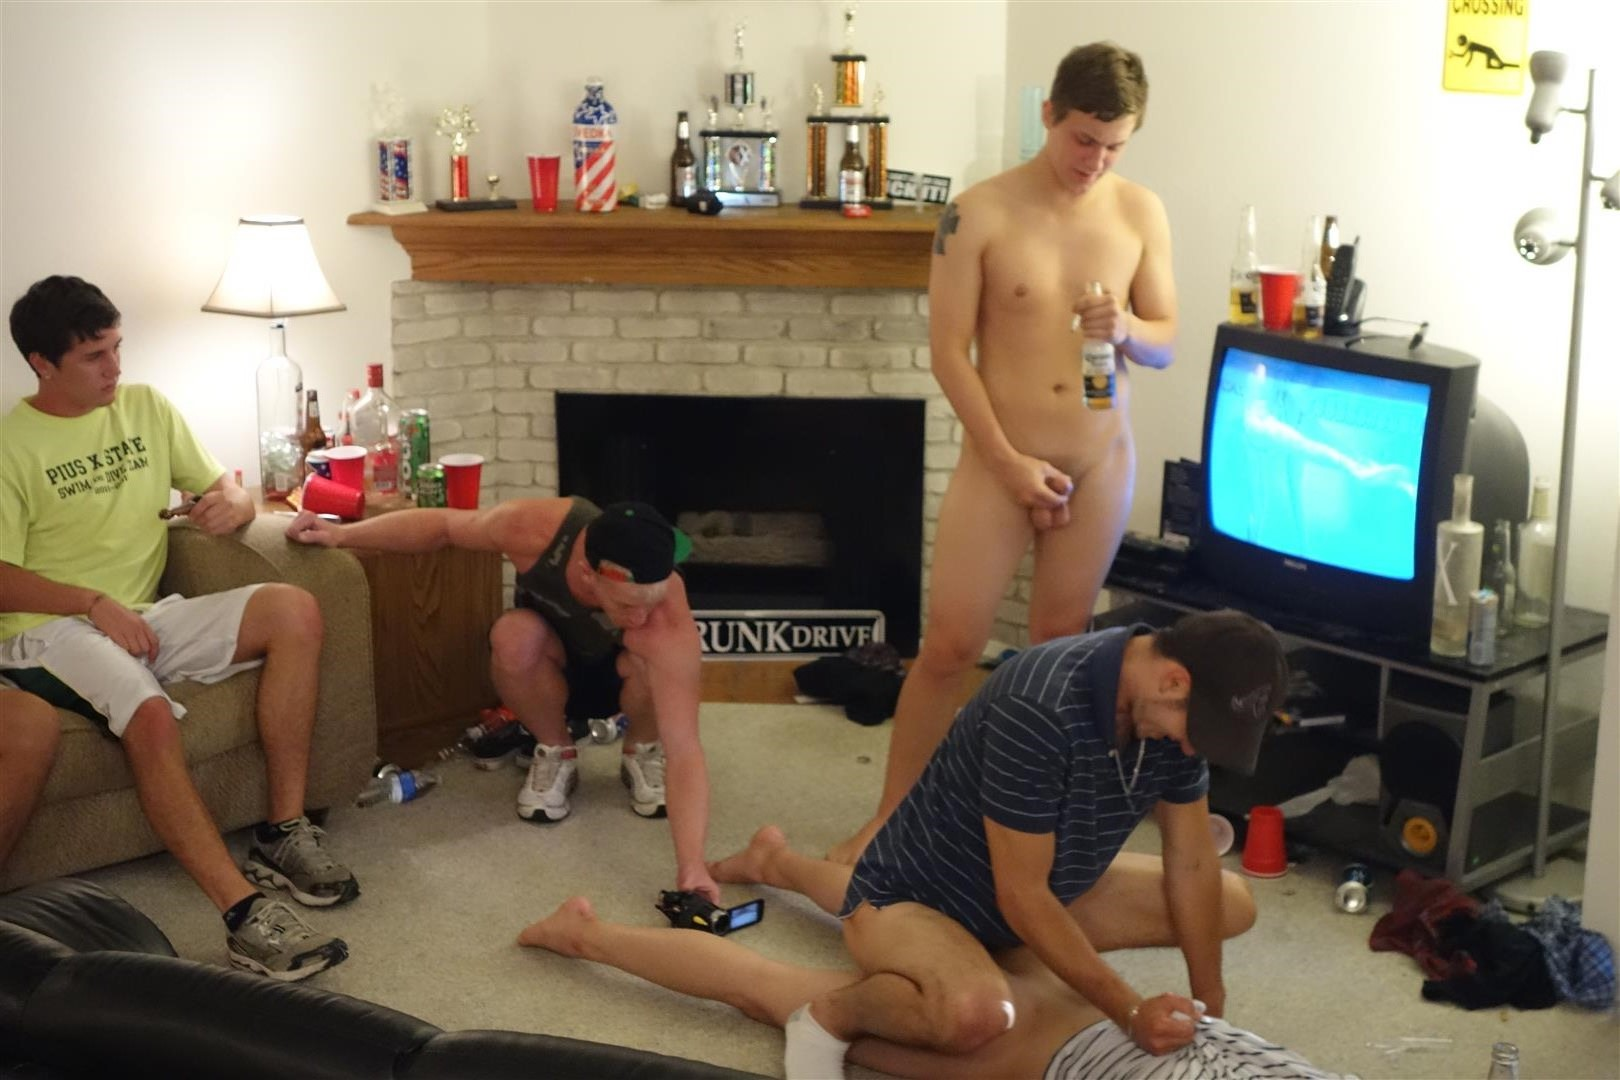 Fraternity X Drunk Frat Pledge Gets Barebacked While Passed Out Amateur Gay Porn 41 Drunk And Passed Out Frat Pledge Gets Fucked Bareback